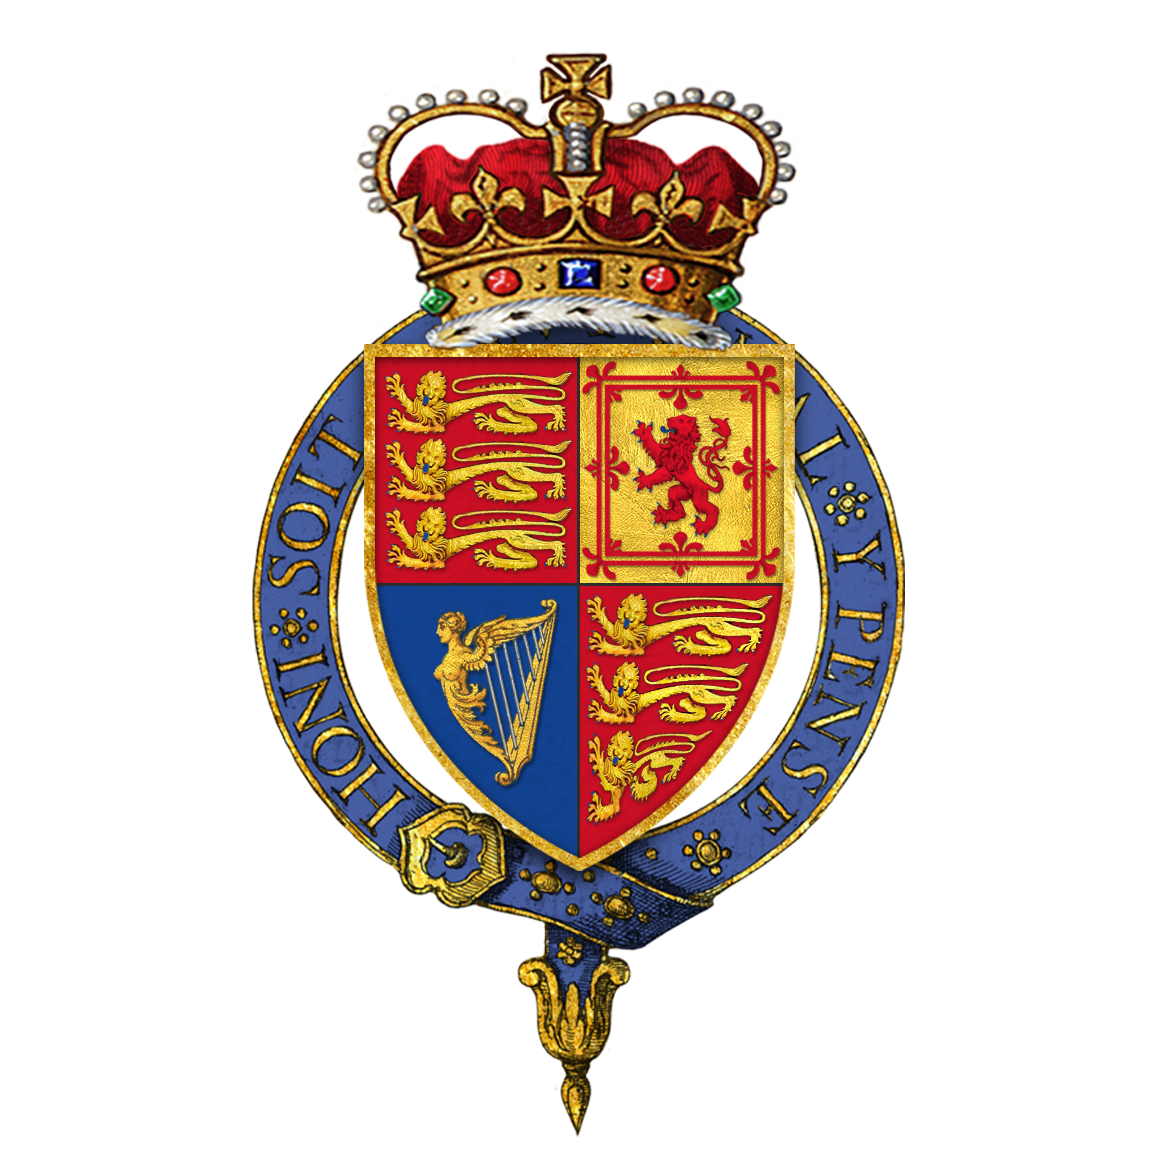 File:Royal Arms of Elizabeth II, Queen of England.png.